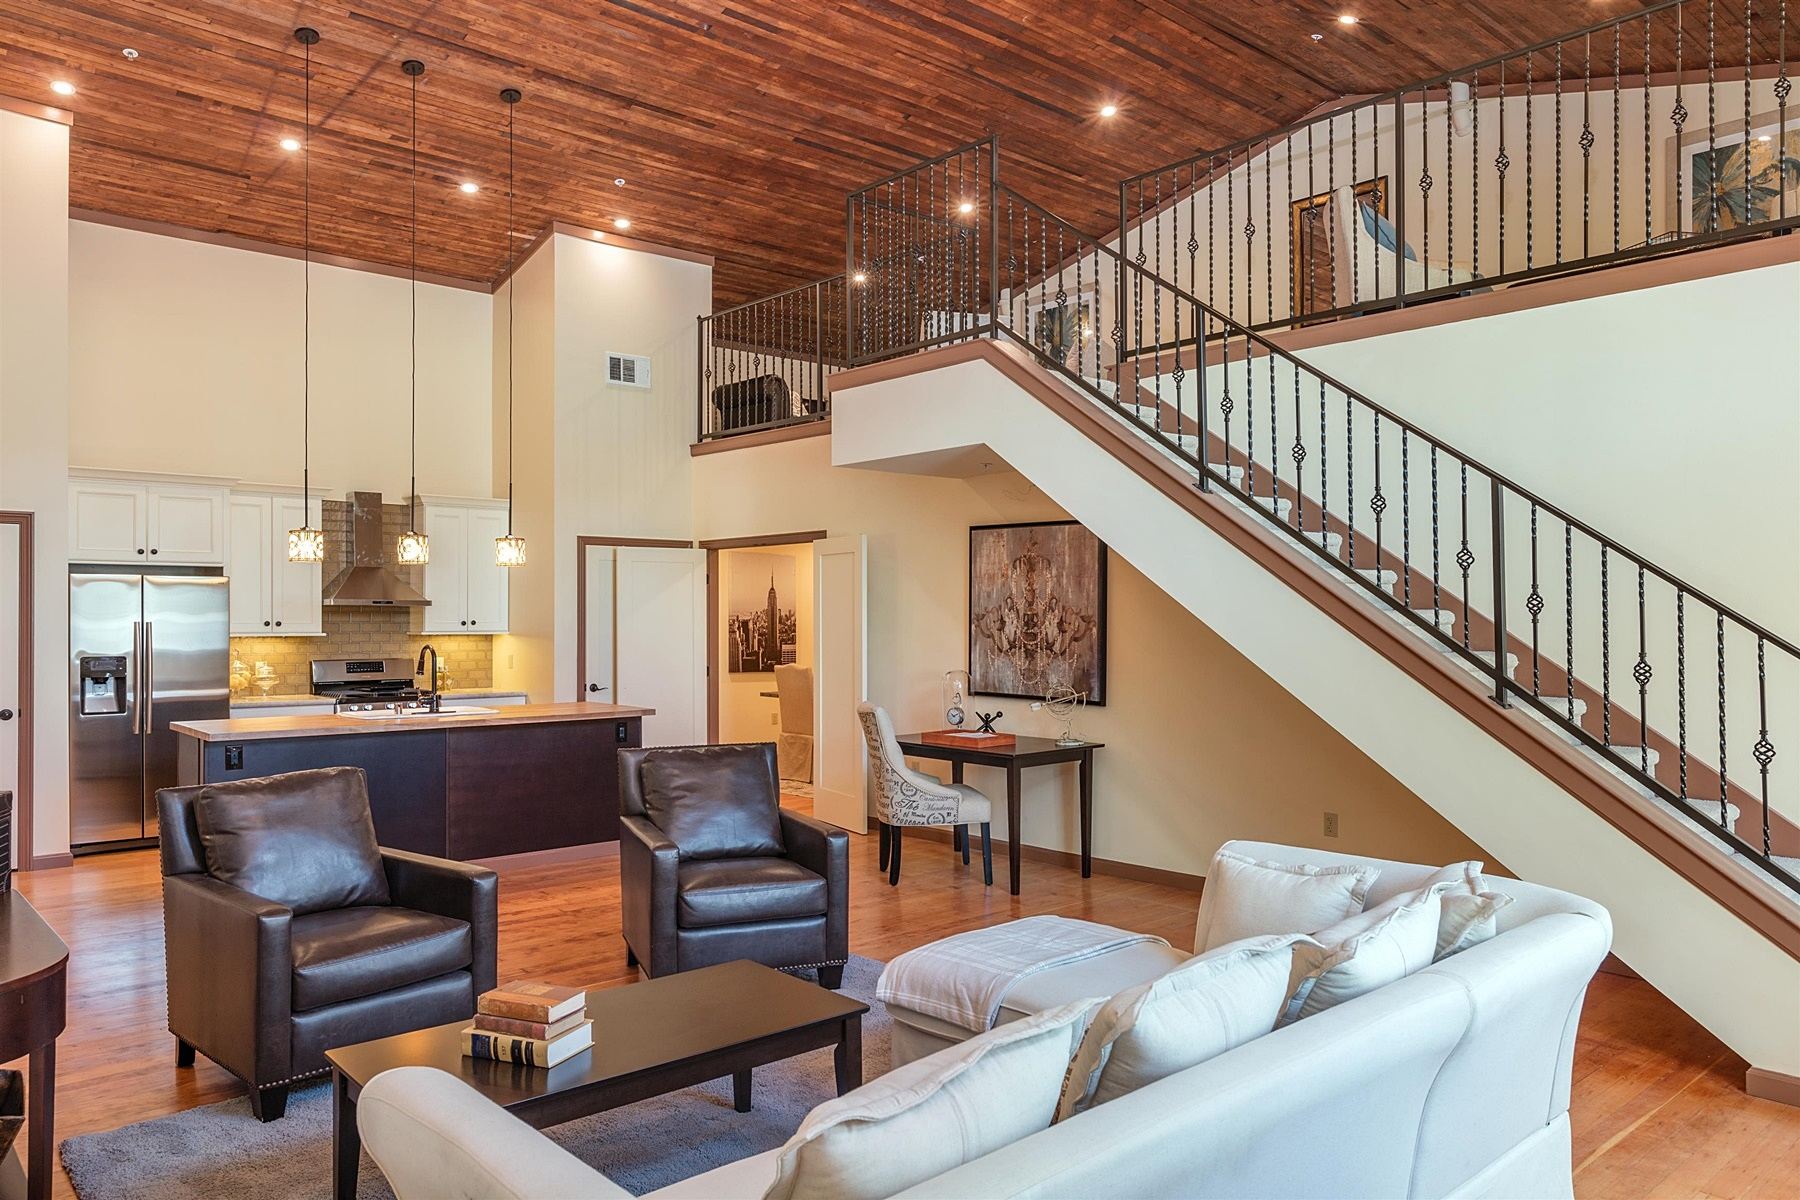 sales property at The Sanctuary At Shattuck: New Luxury Condos In Bushrod